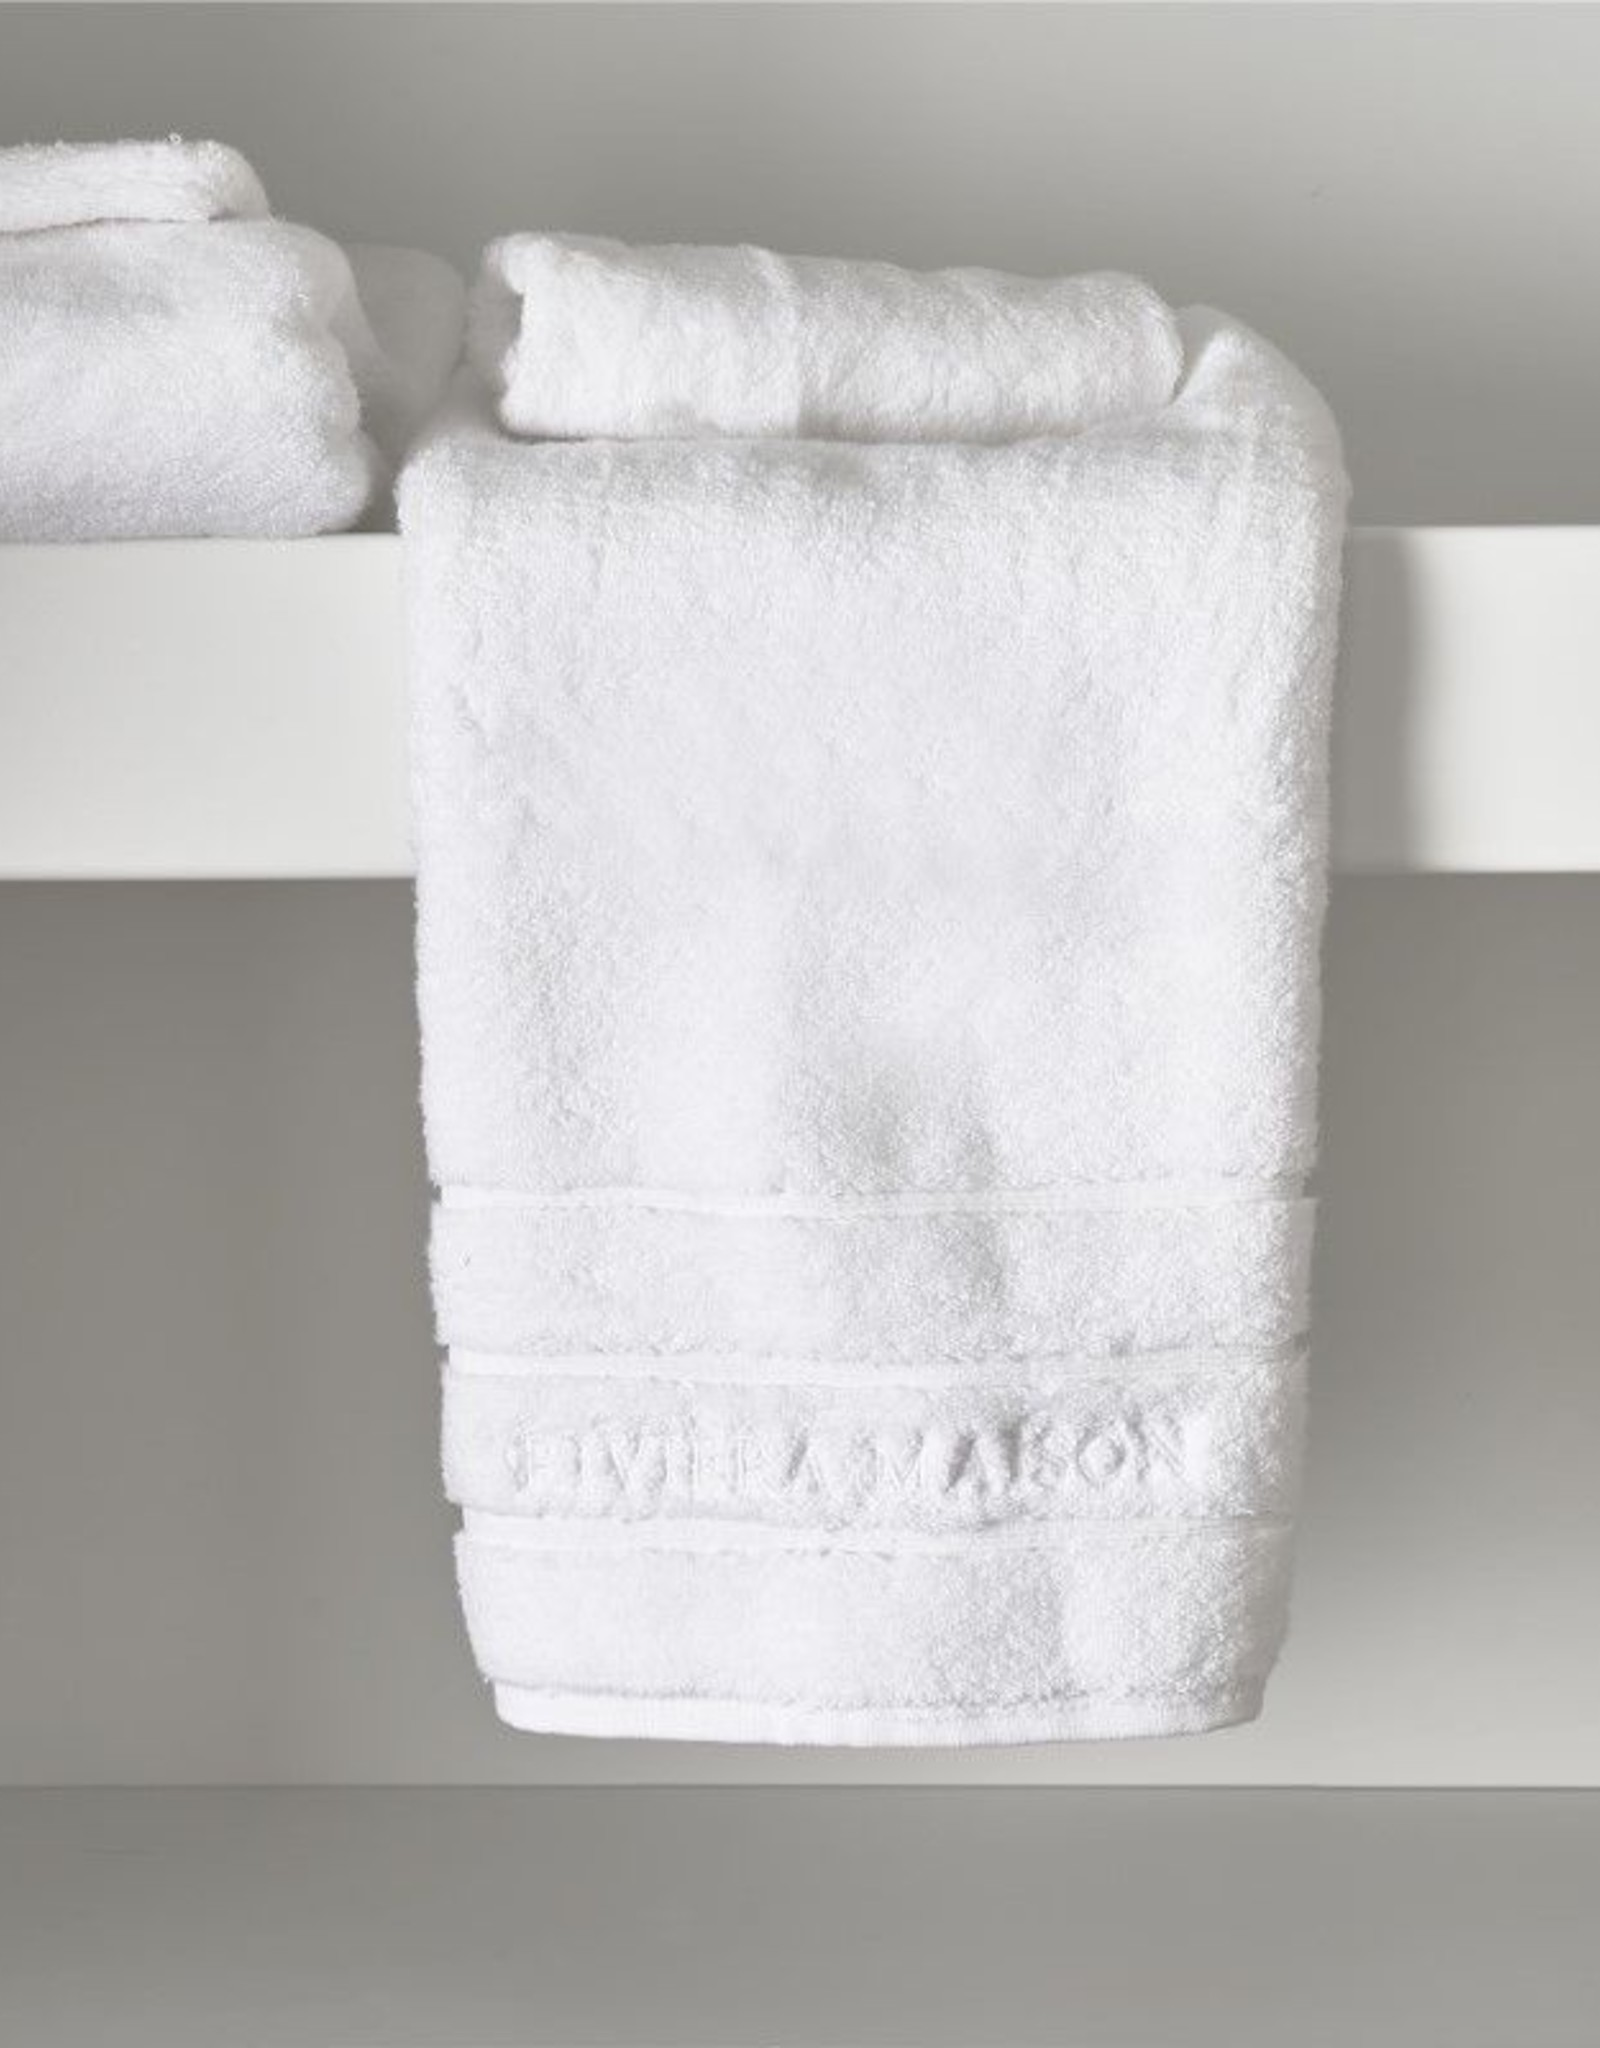 Riviera Maison RM Hotel Towel white 100x50